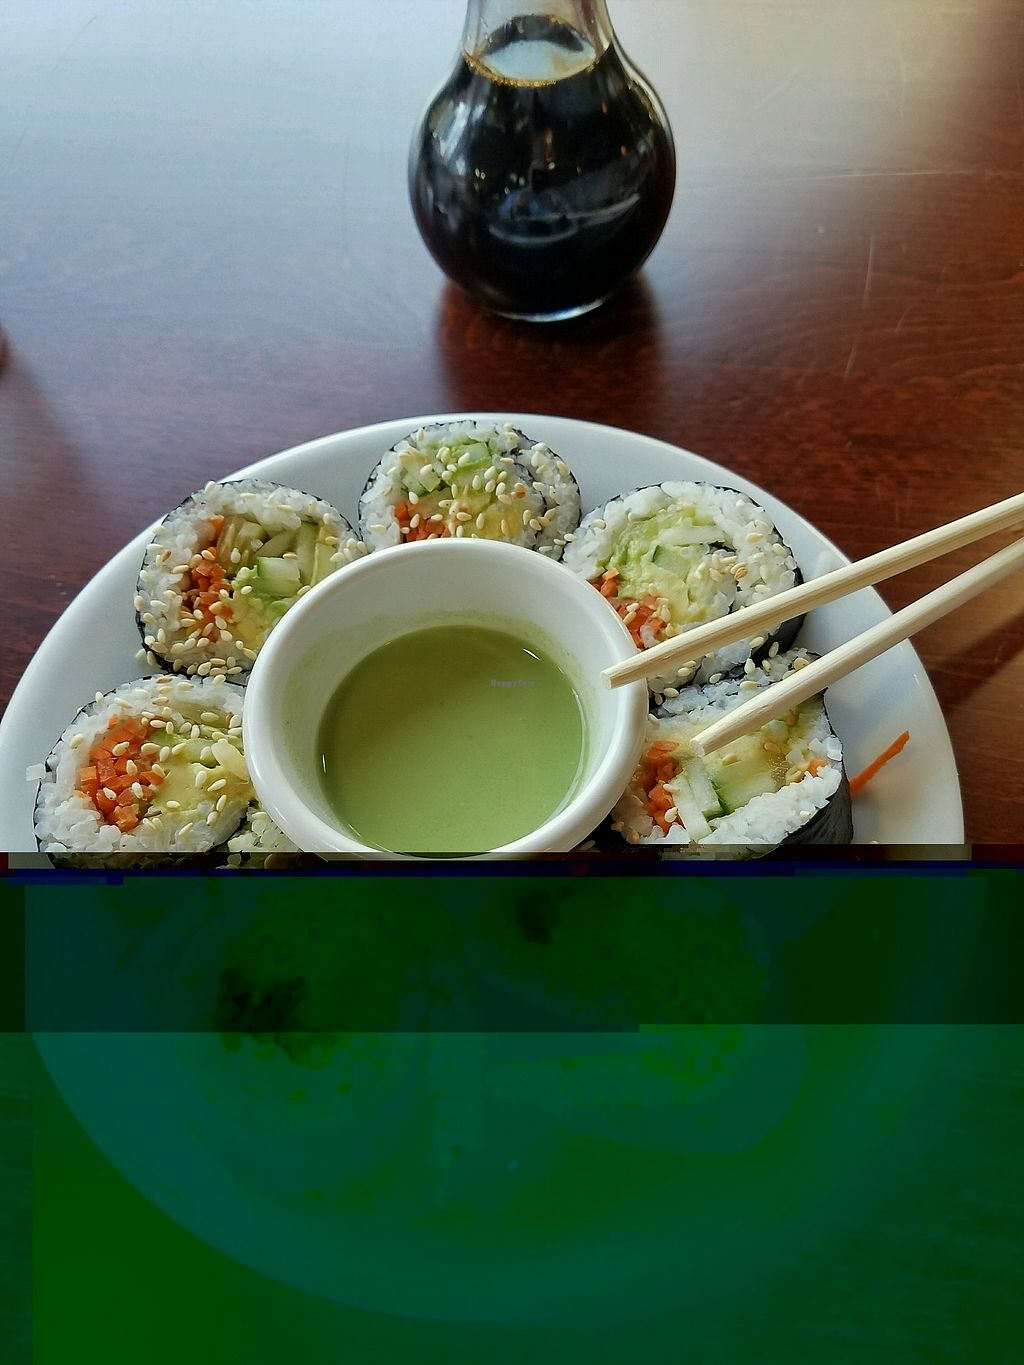 """Photo of Vegan Kitchen  by <a href=""""/members/profile/Dark%26Stormy"""">Dark&Stormy</a> <br/>the Avocado rolls! yum <br/> January 1, 2018  - <a href='/contact/abuse/image/21811/341498'>Report</a>"""